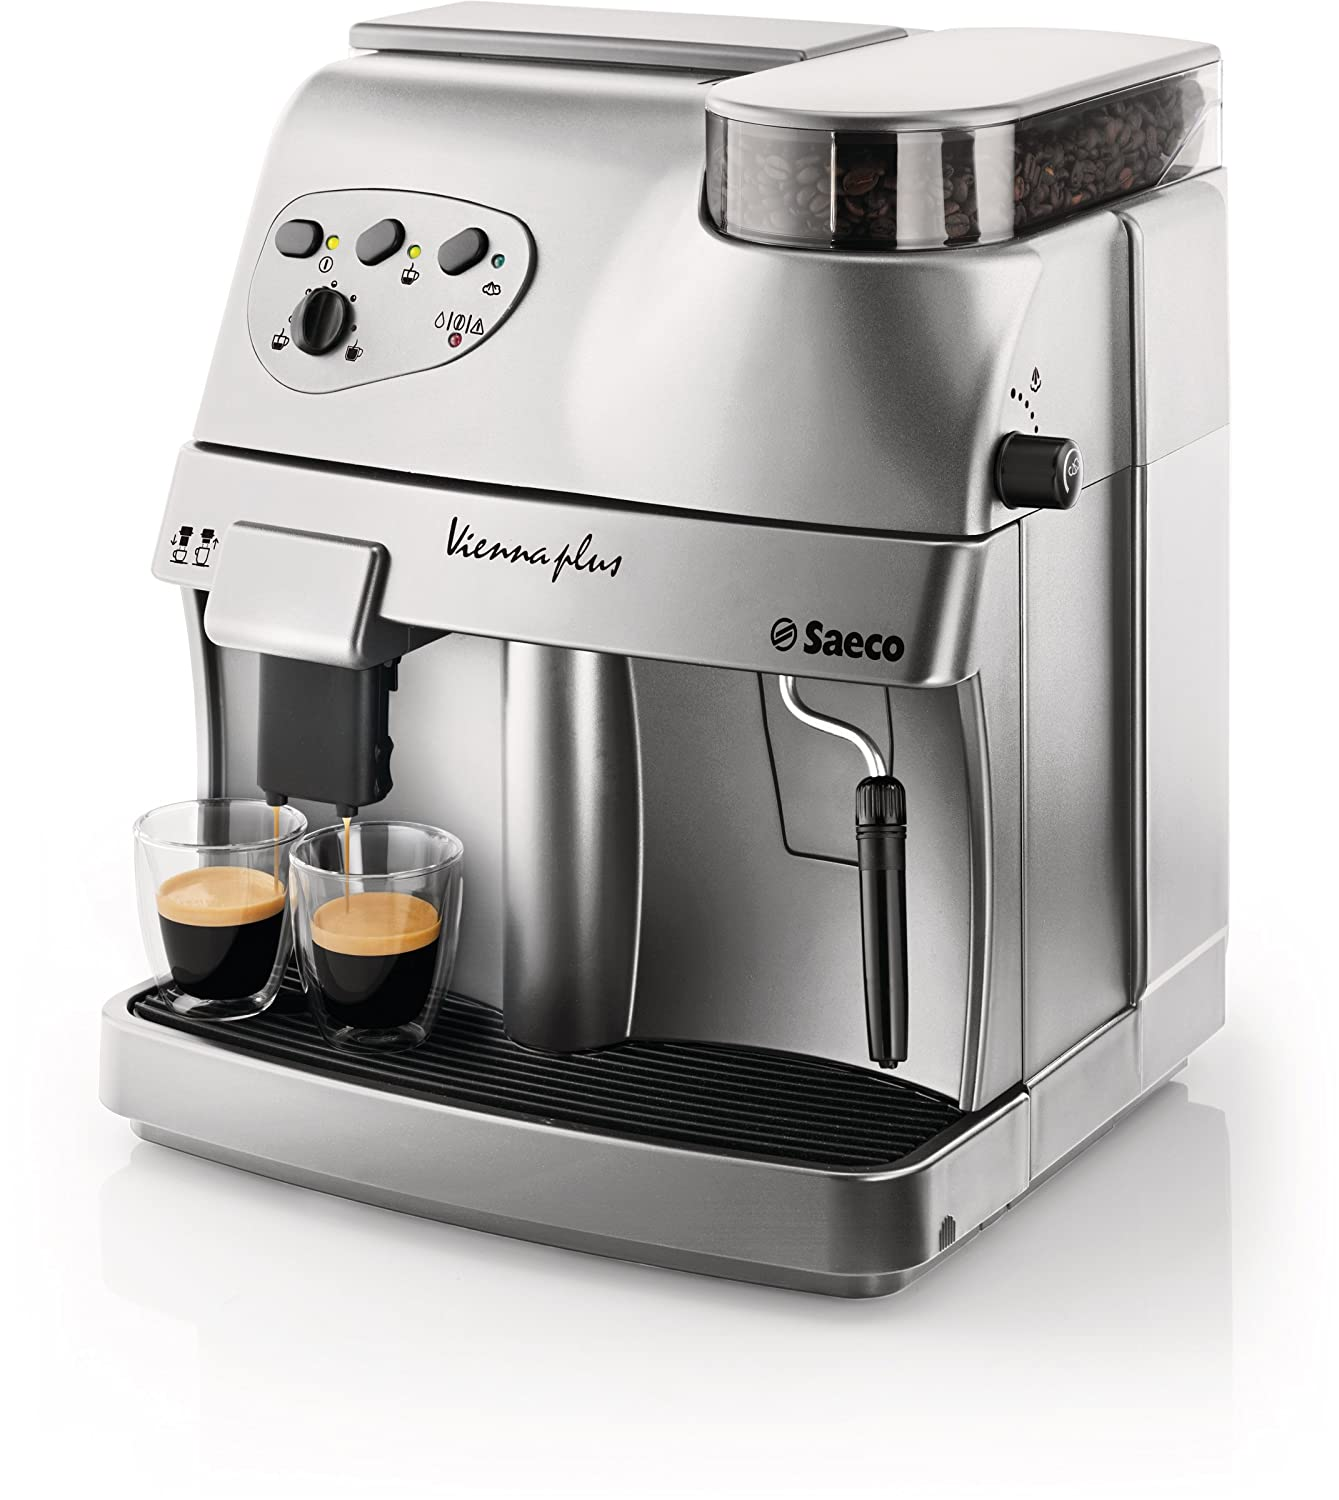 philips saeco vienna plus automatic espresso machine